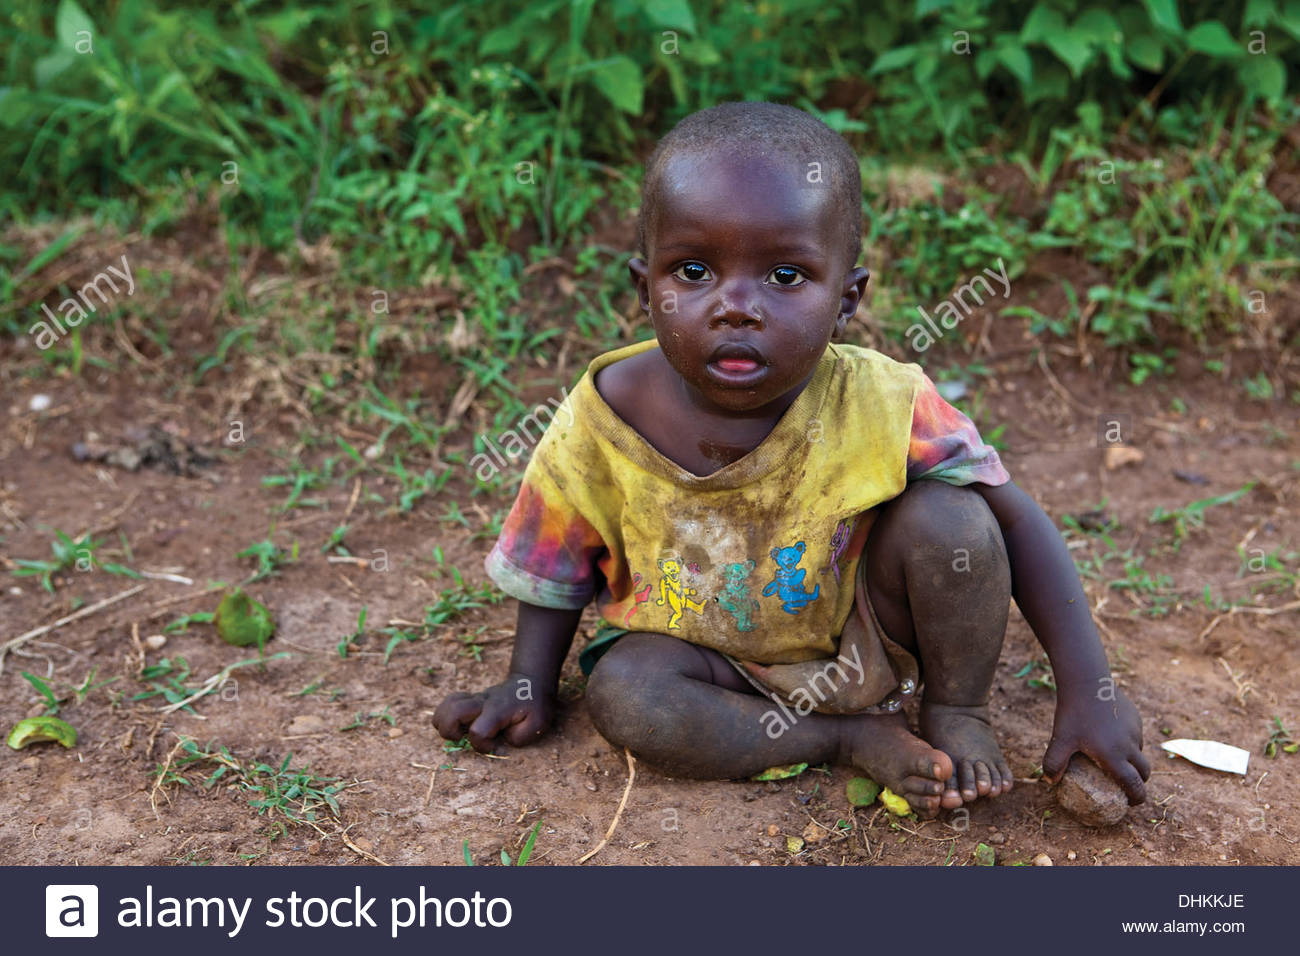 Impoverished African Toddler - Stock Image